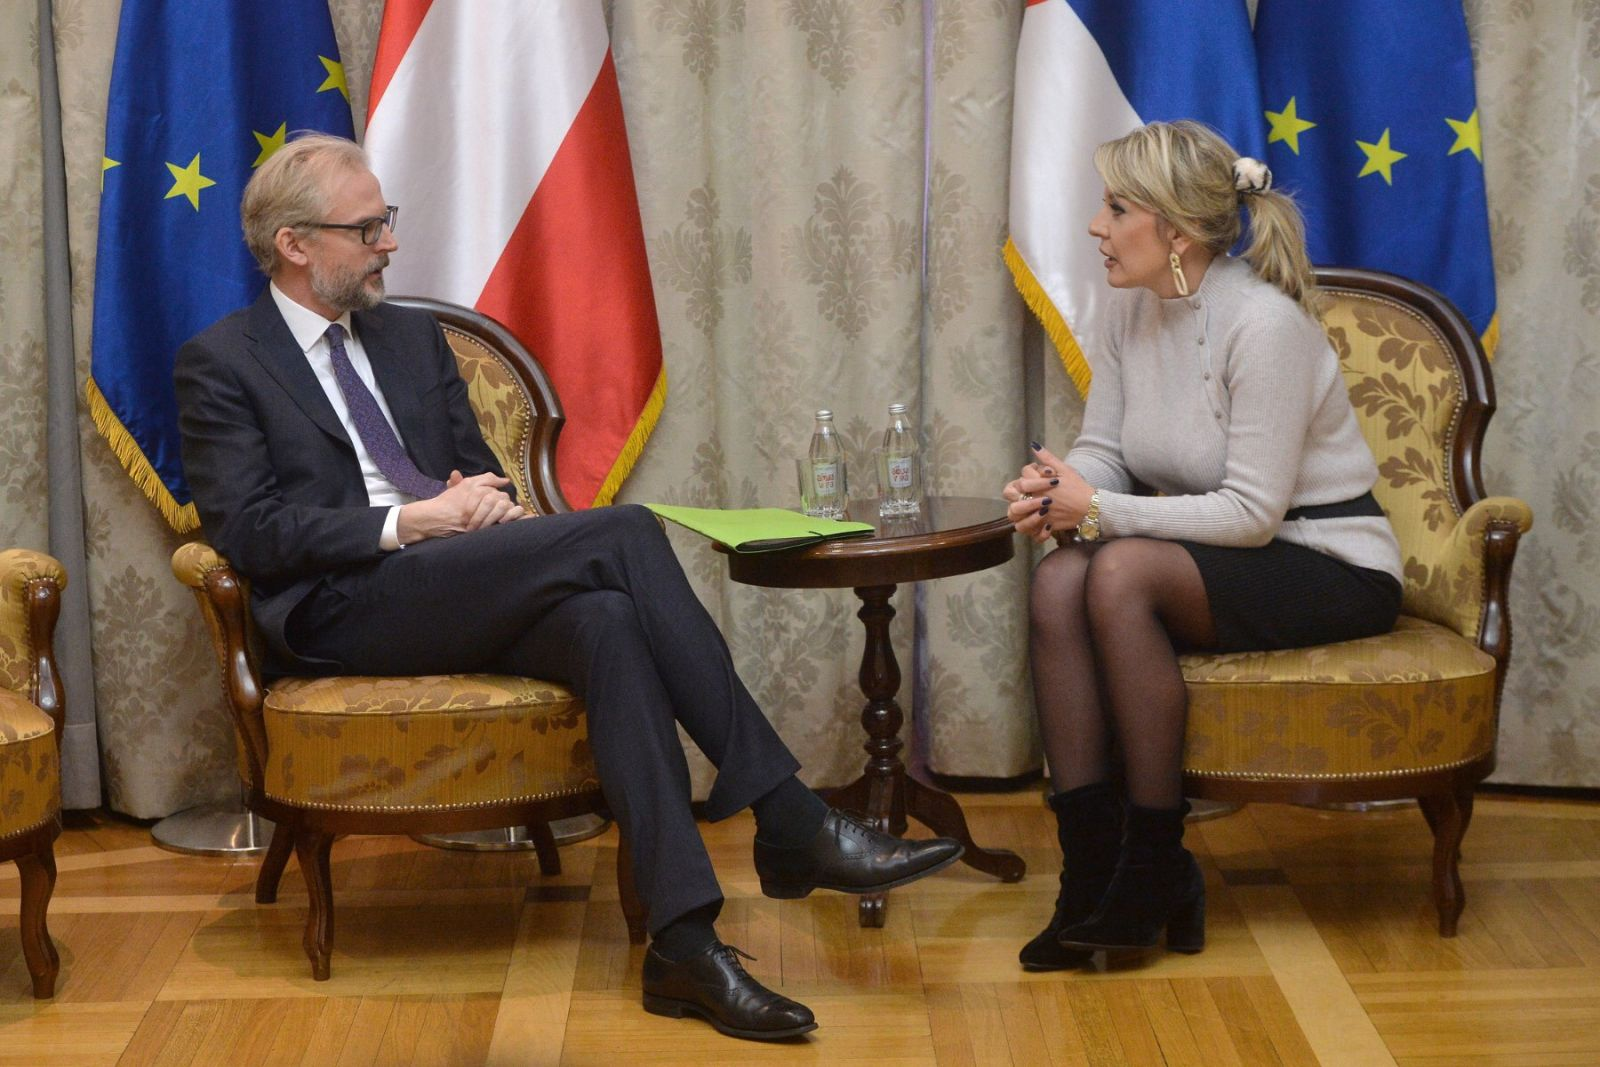 J. Joksimović and Lutterotti: Austria actively supports regional cooperation in the Western Balkans